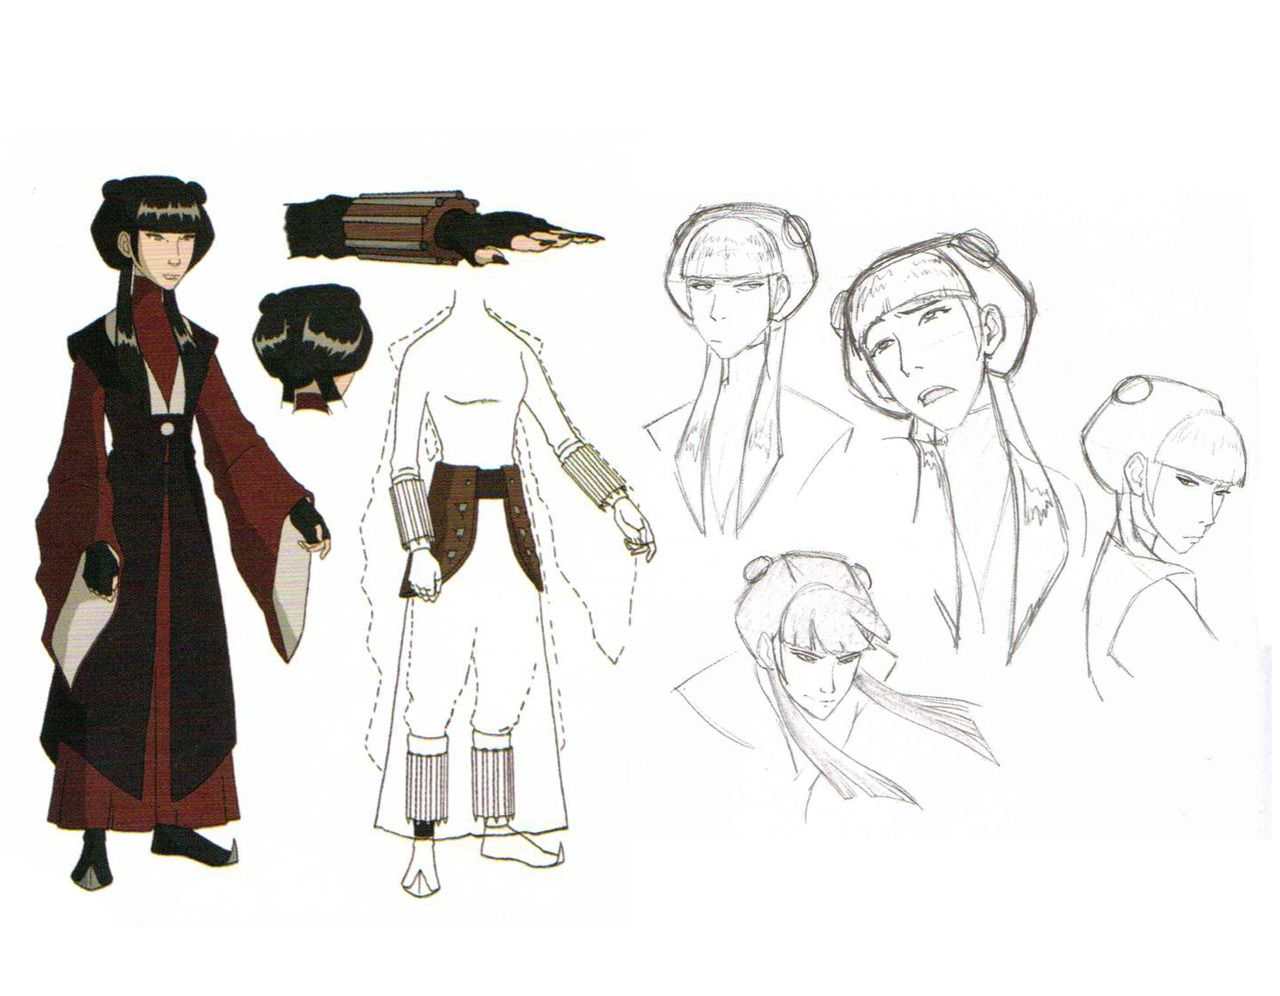 Animation Art Avatar The Last Airbender Model Sheets Avatar Characters Avatar The Last Airbender Avatar Cartoon